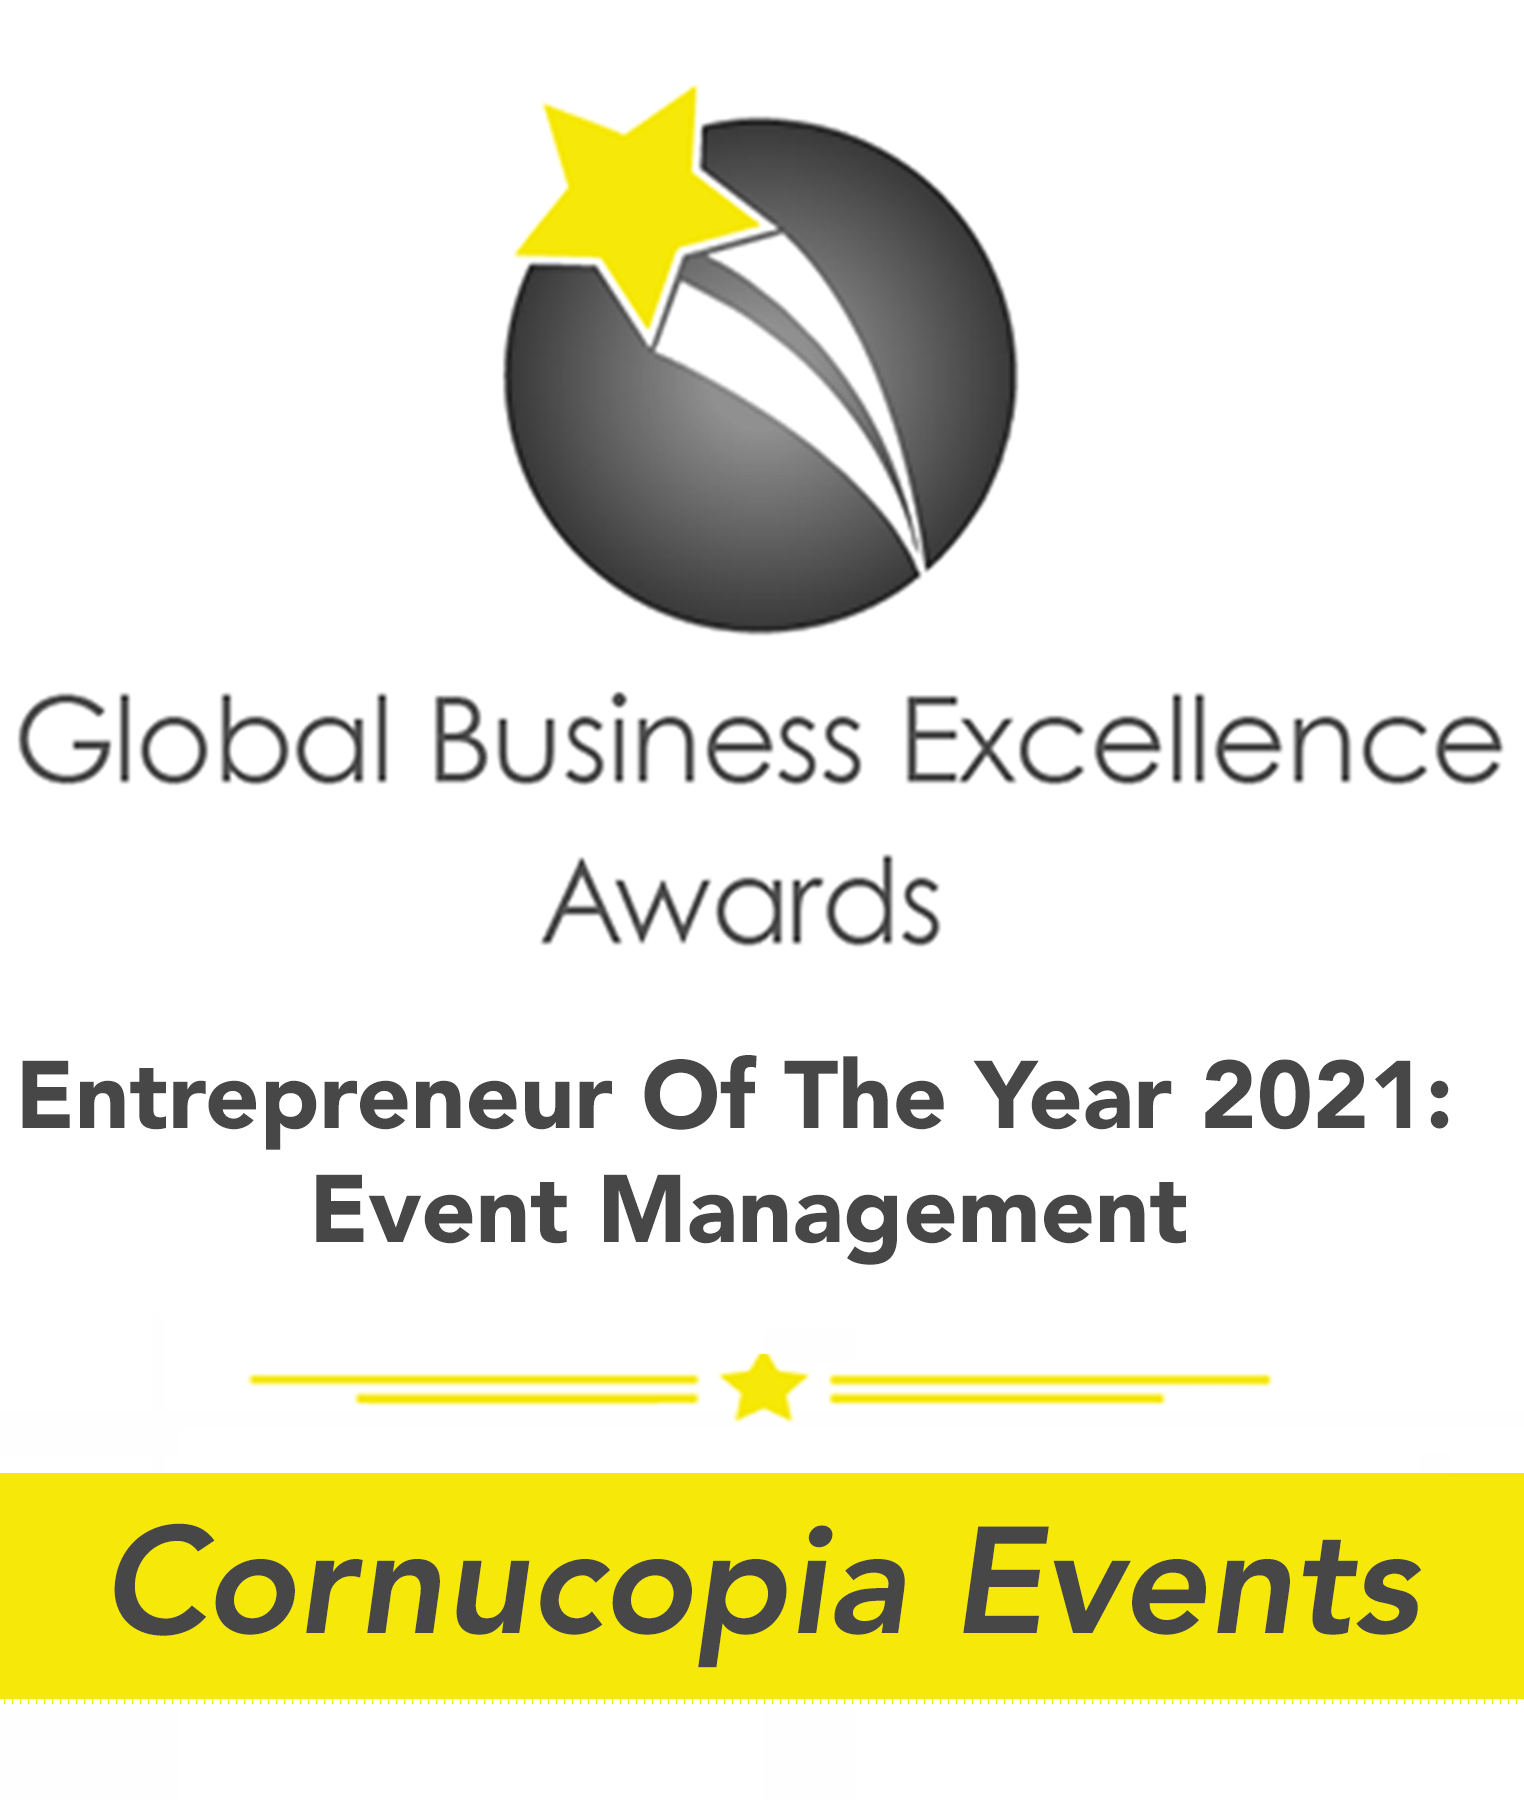 Entrepreneur Of The Year 2021: Event Management